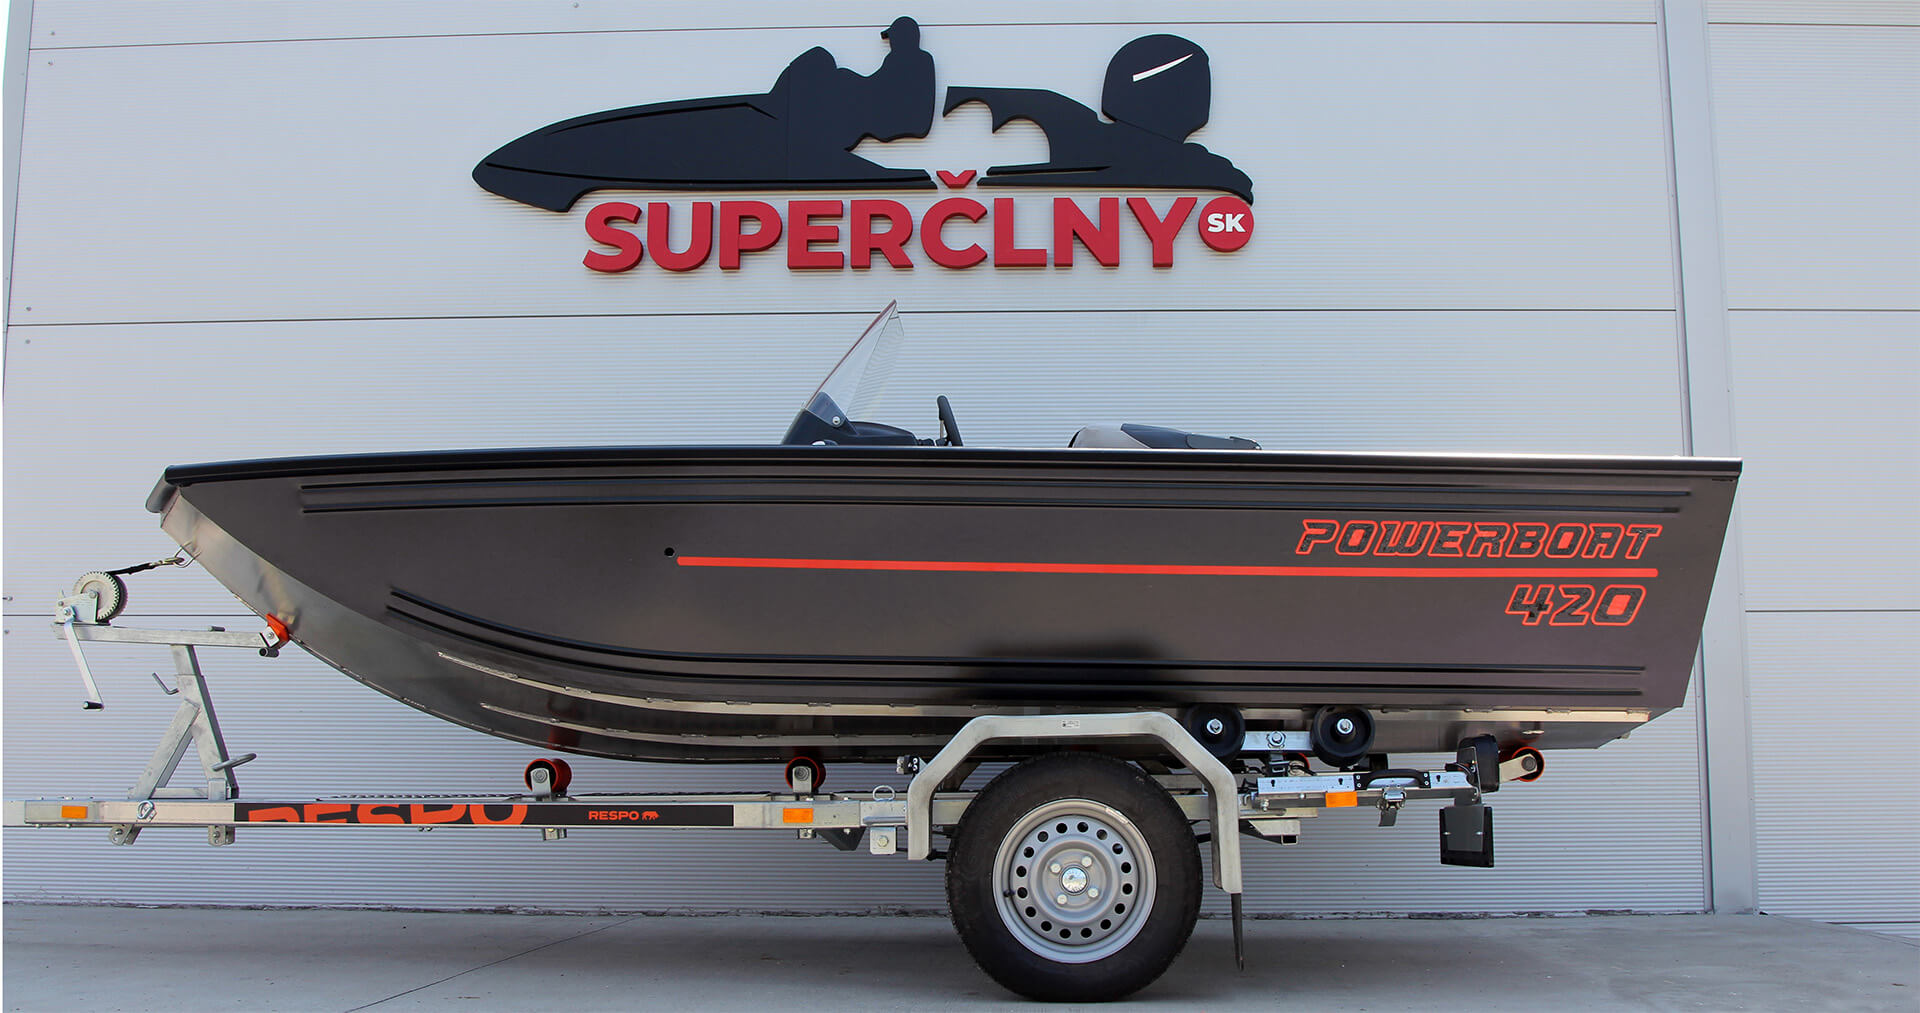 Referencia Powerboat 420 + Mercury 40 ELPT EFI, Trnava